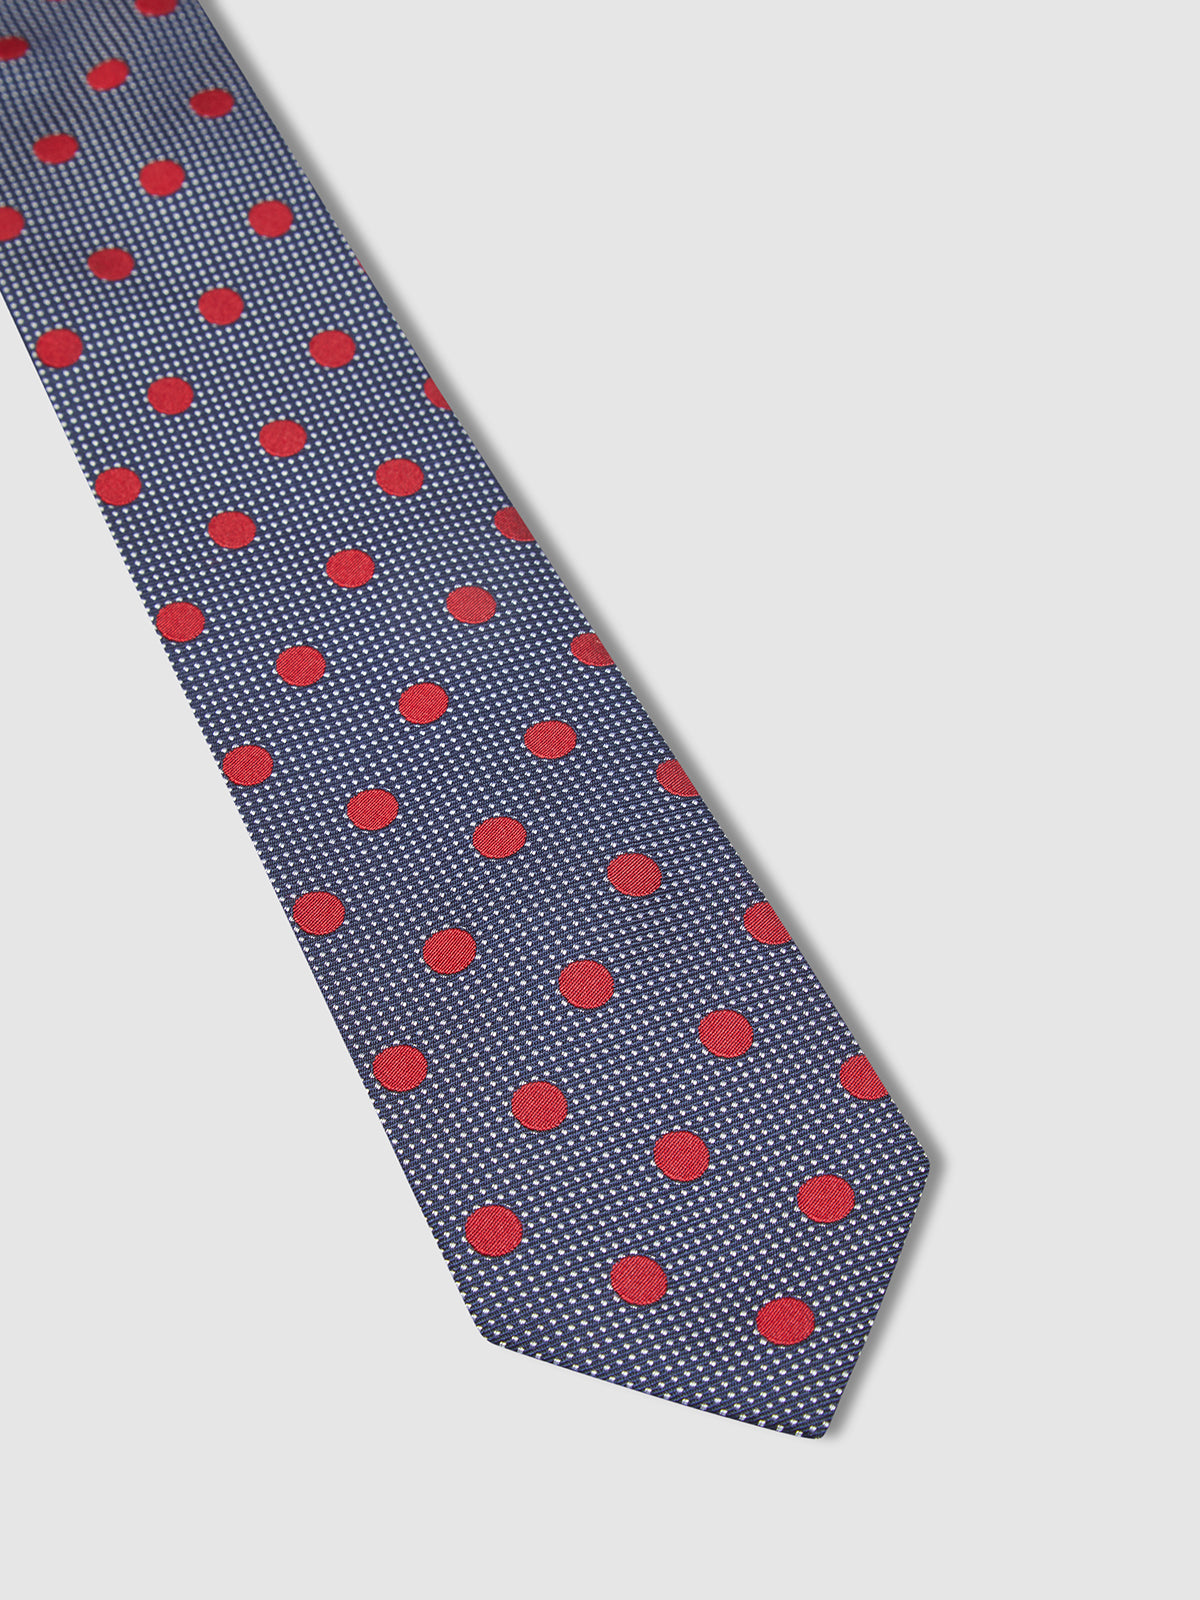 SPOT ON SPOTS TIE NAVY/RED